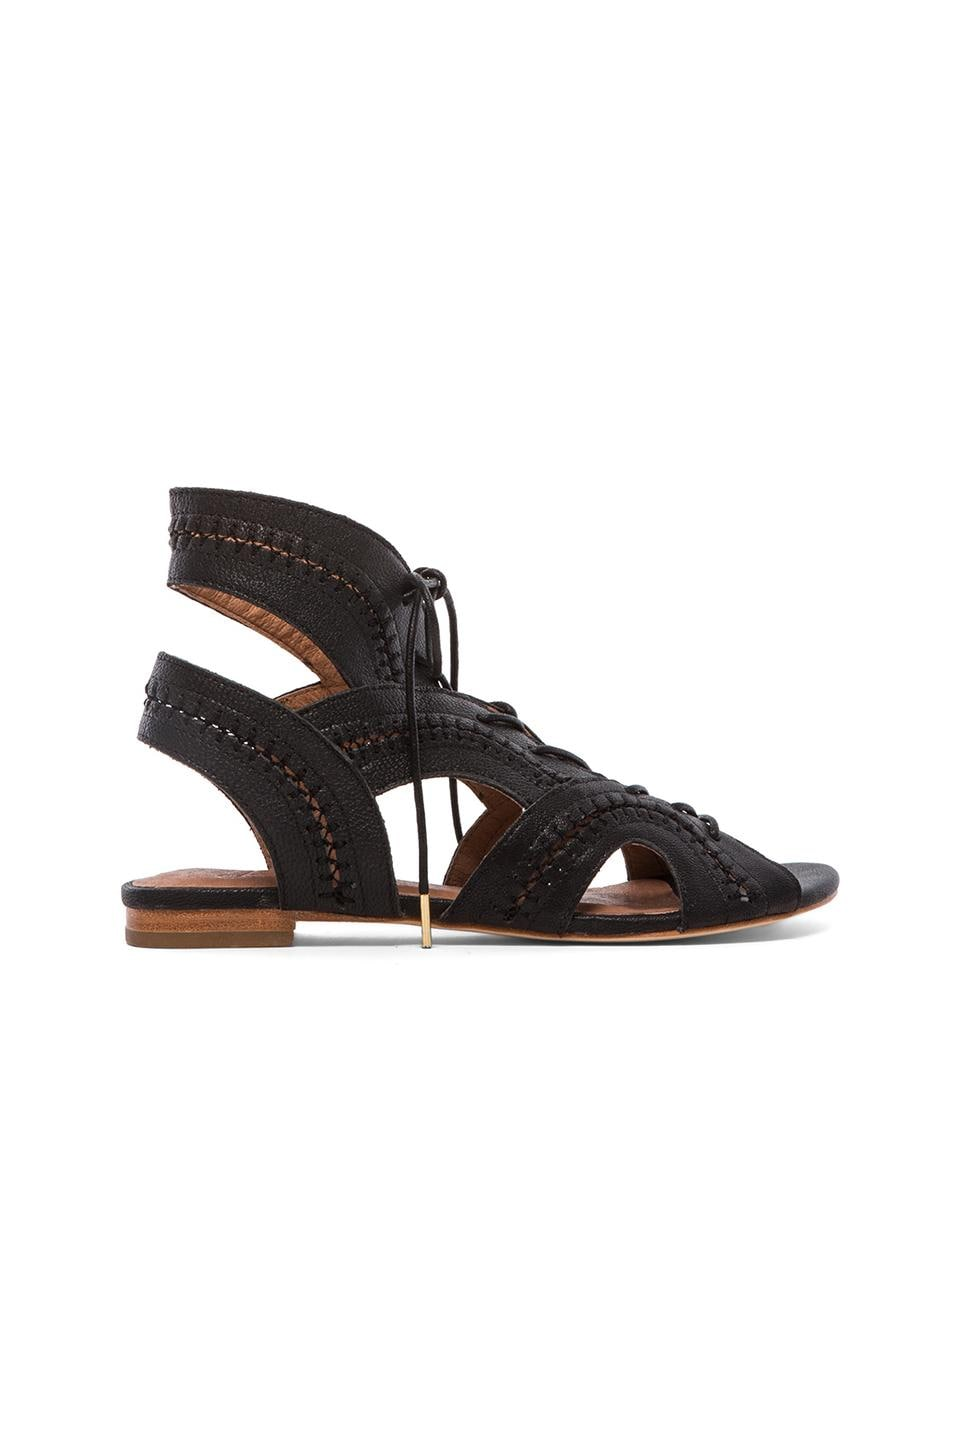 Joie Toldeo Sandal in Black